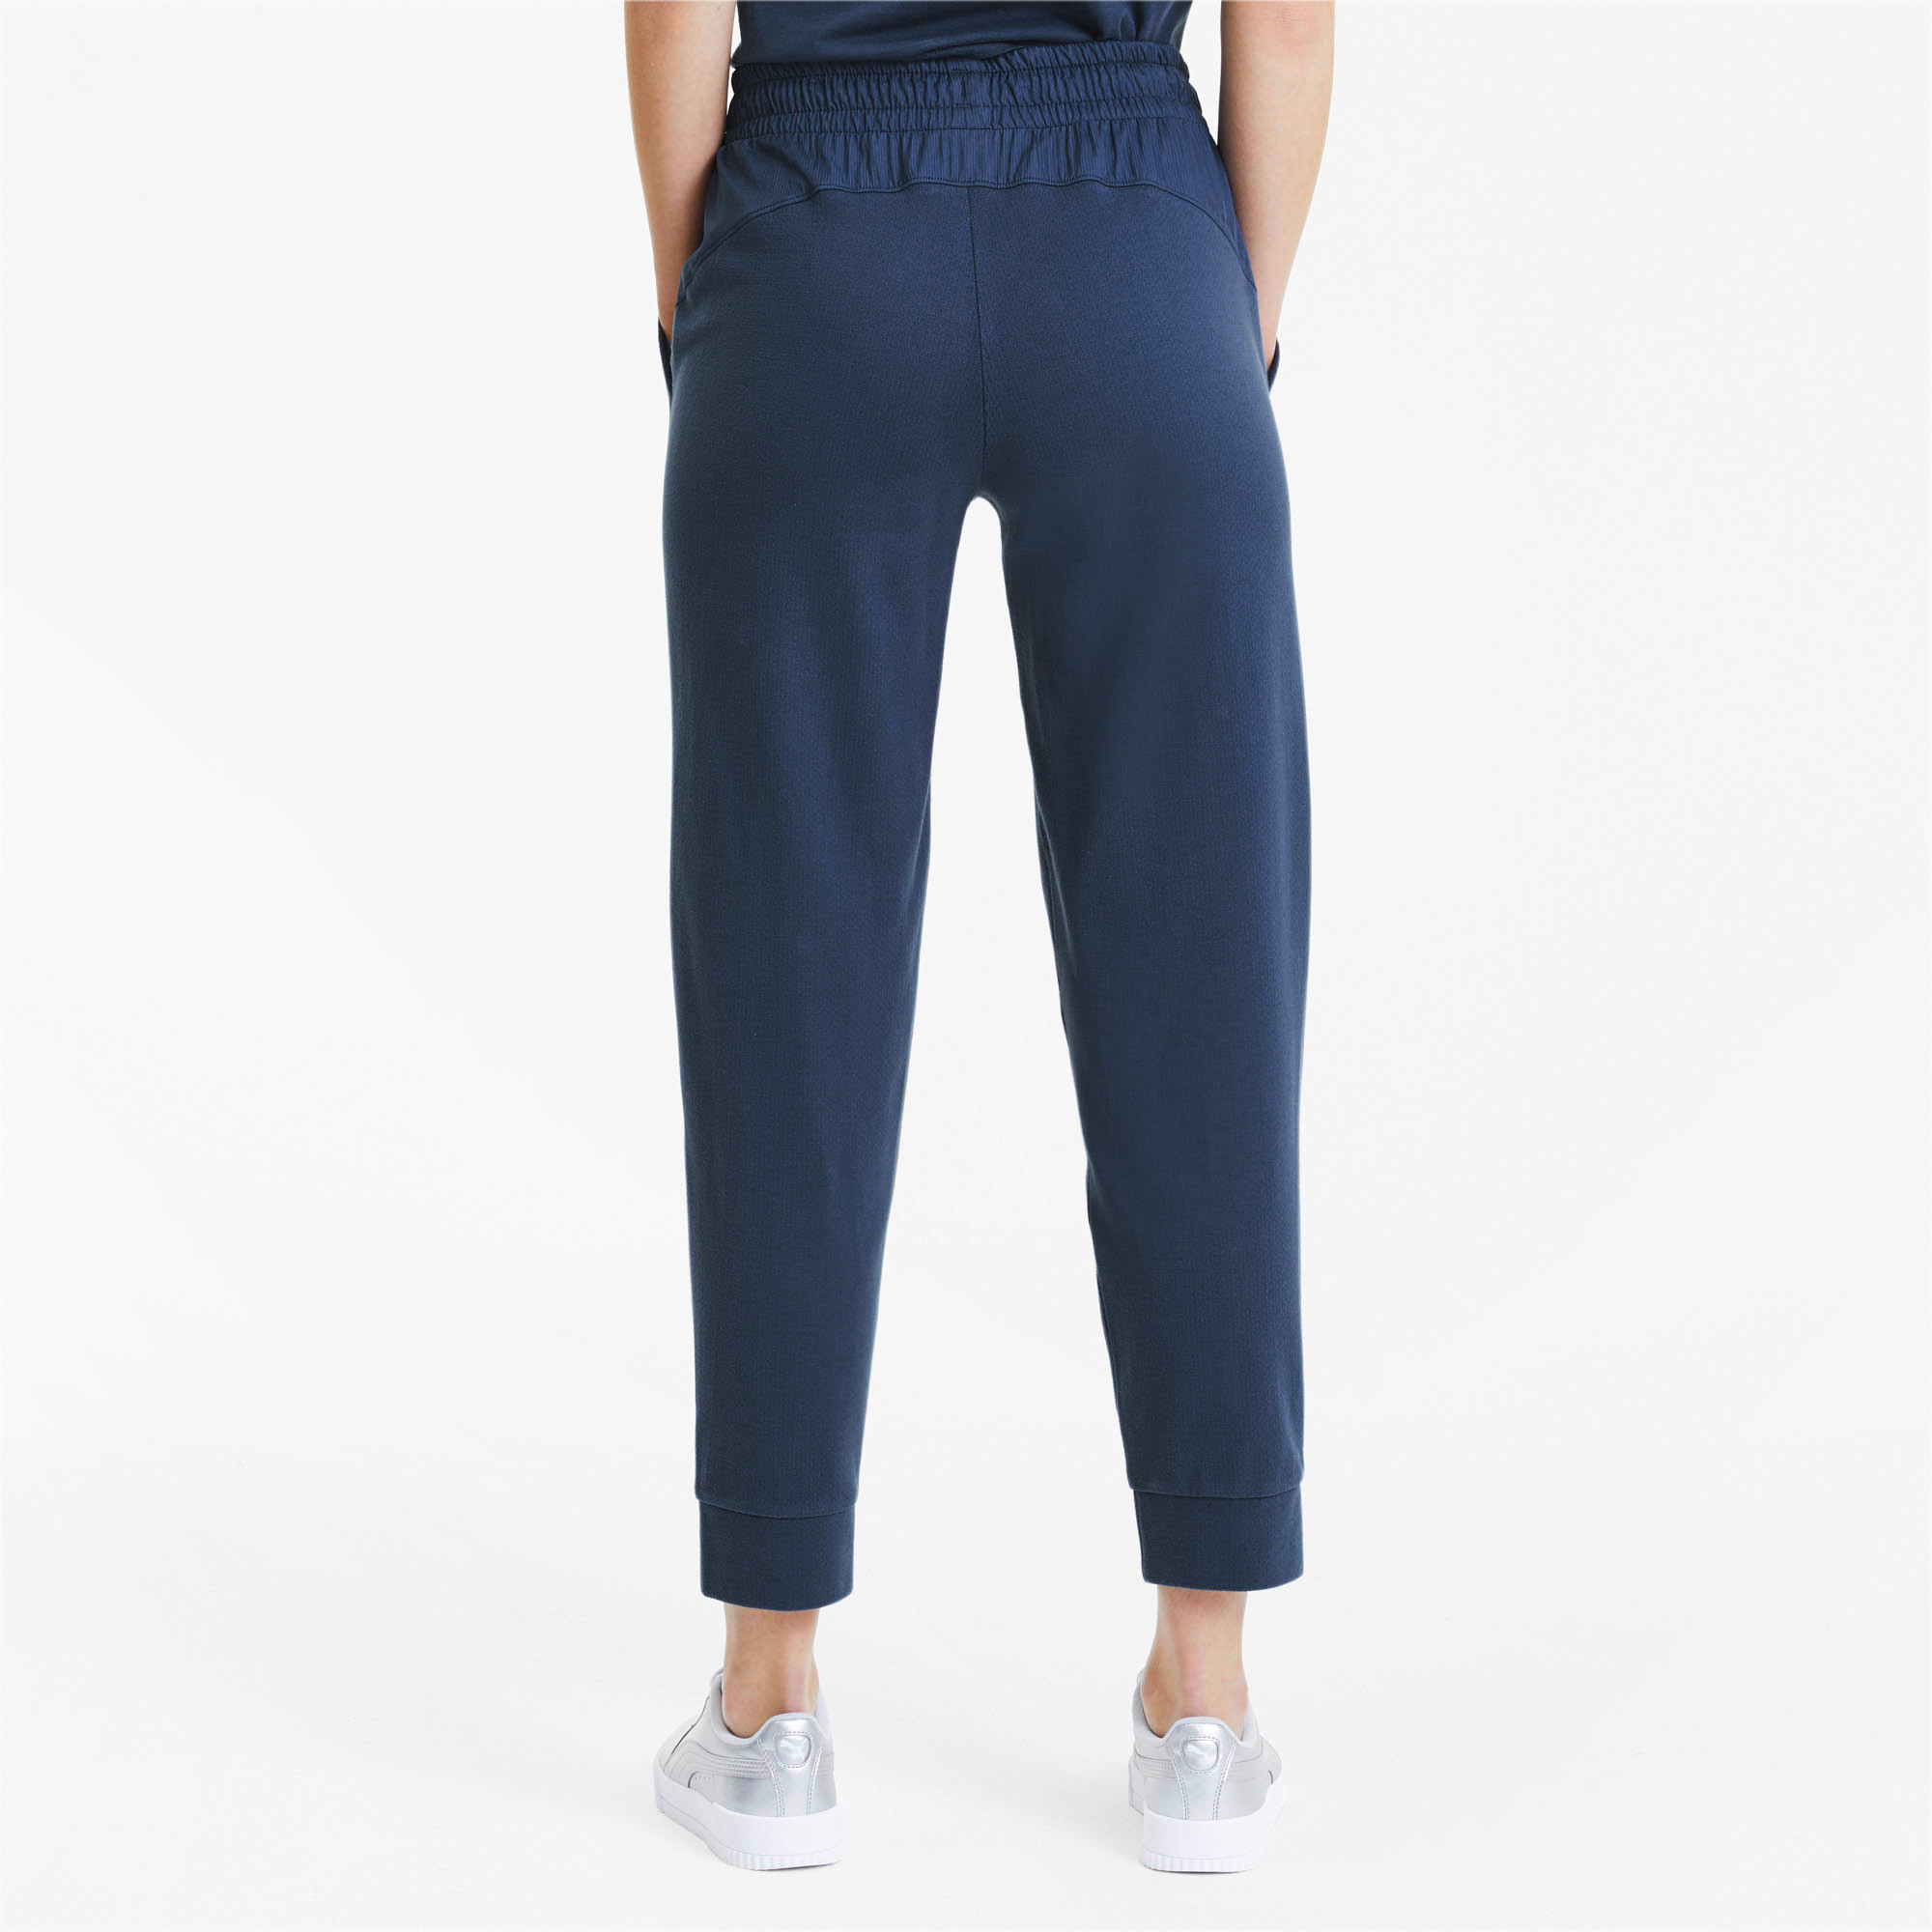 PUMA-Women-039-s-NU-TILITY-Sweatpants thumbnail 19